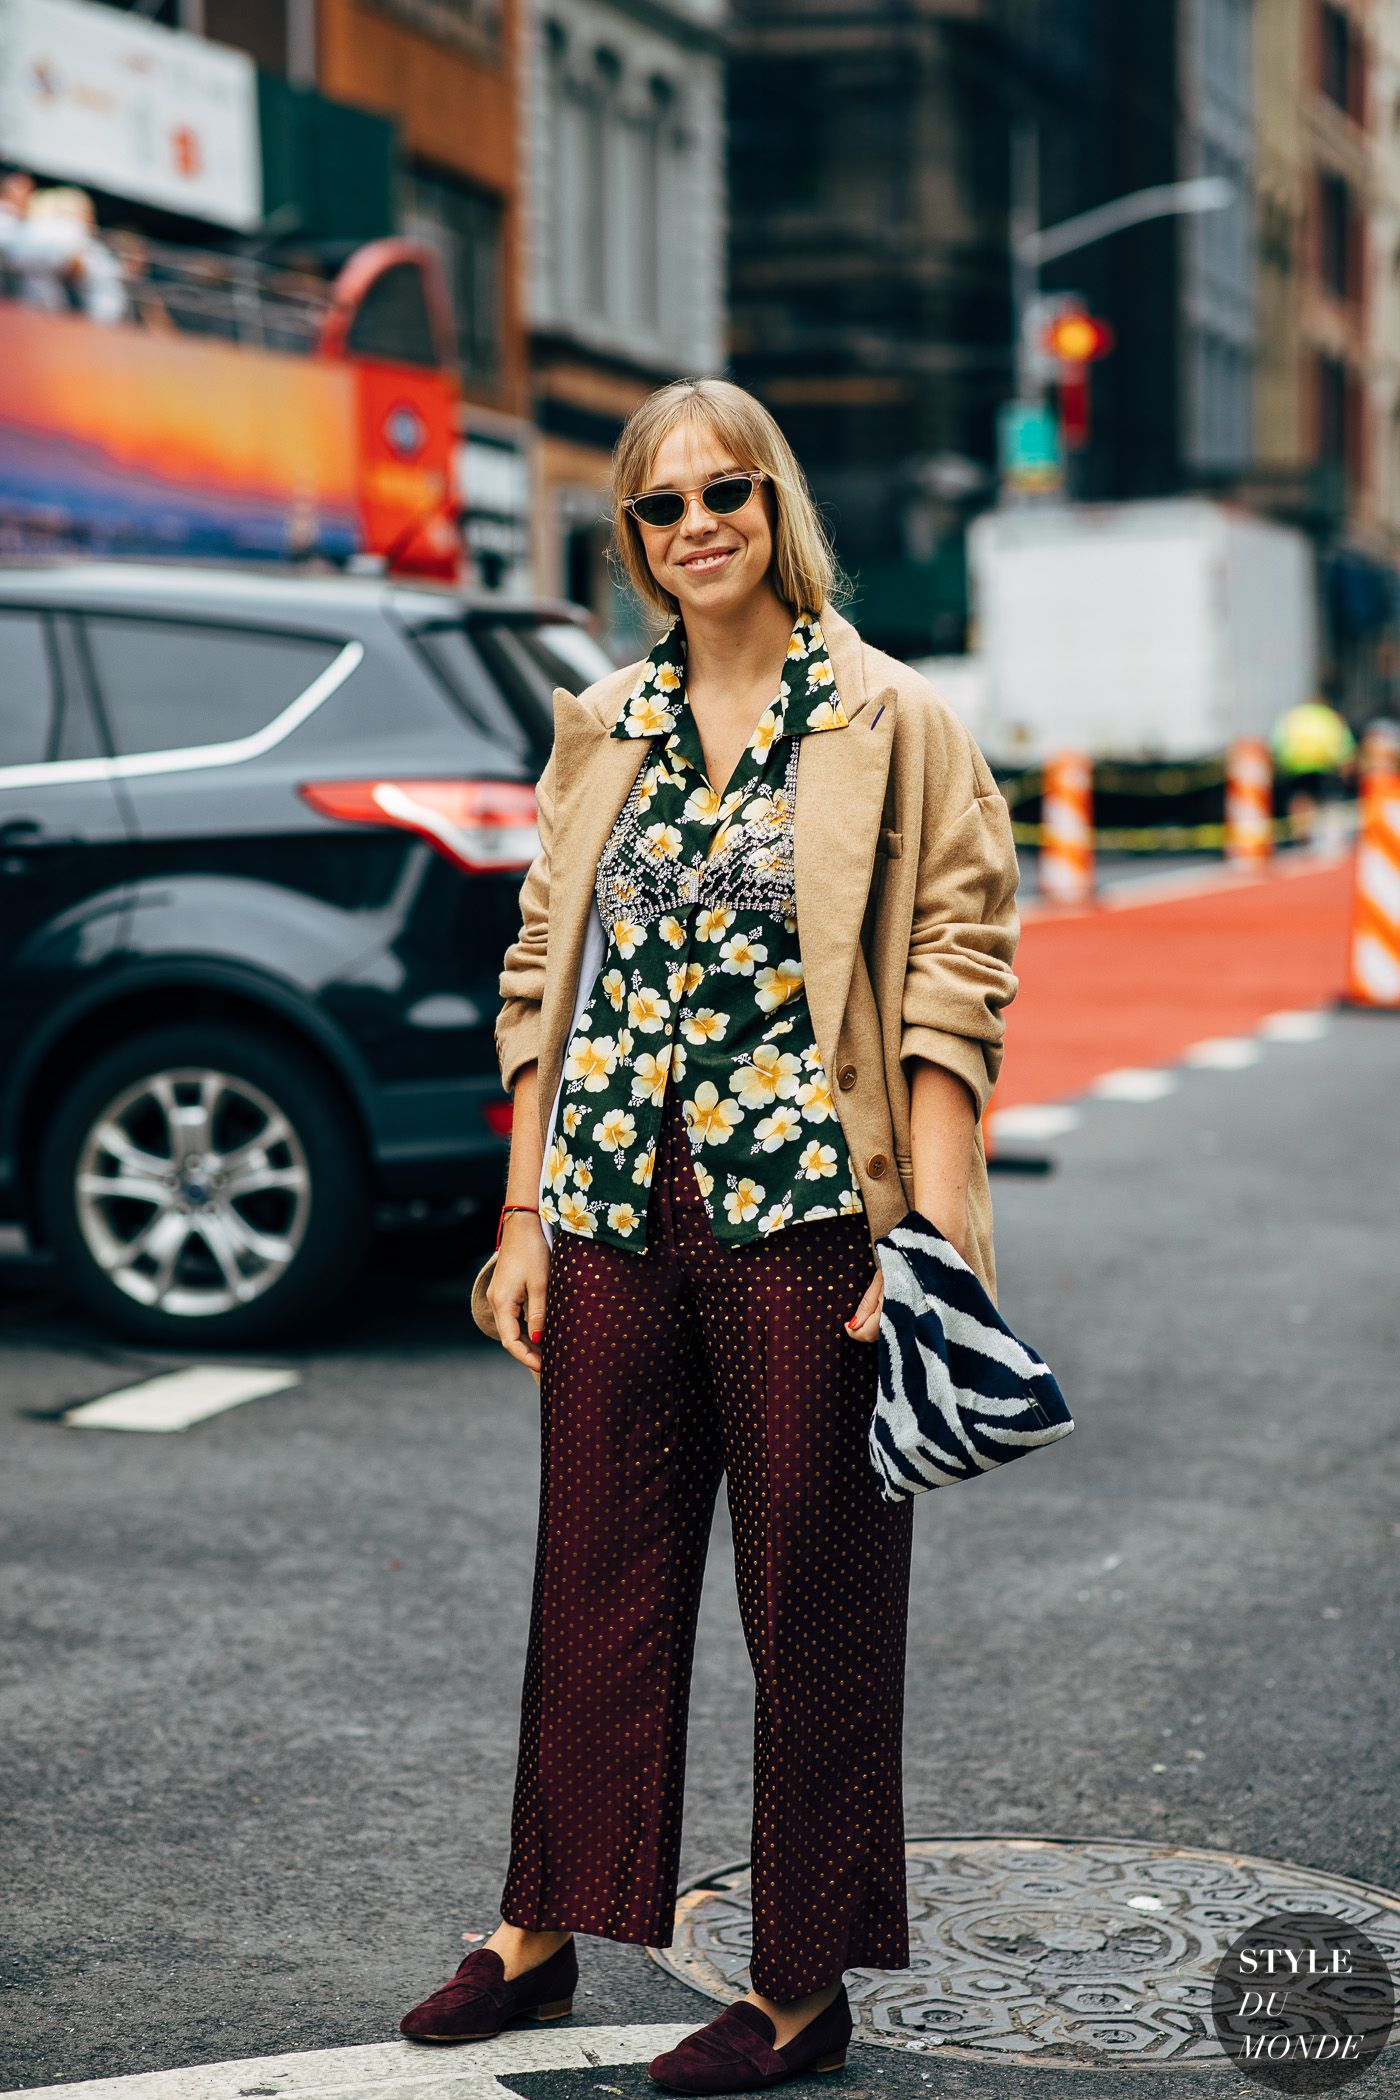 Forum on this topic: Chloe Girl Goes Urban For SpringSummer 2019, chloe-girl-goes-urban-for-springsummer-2019/